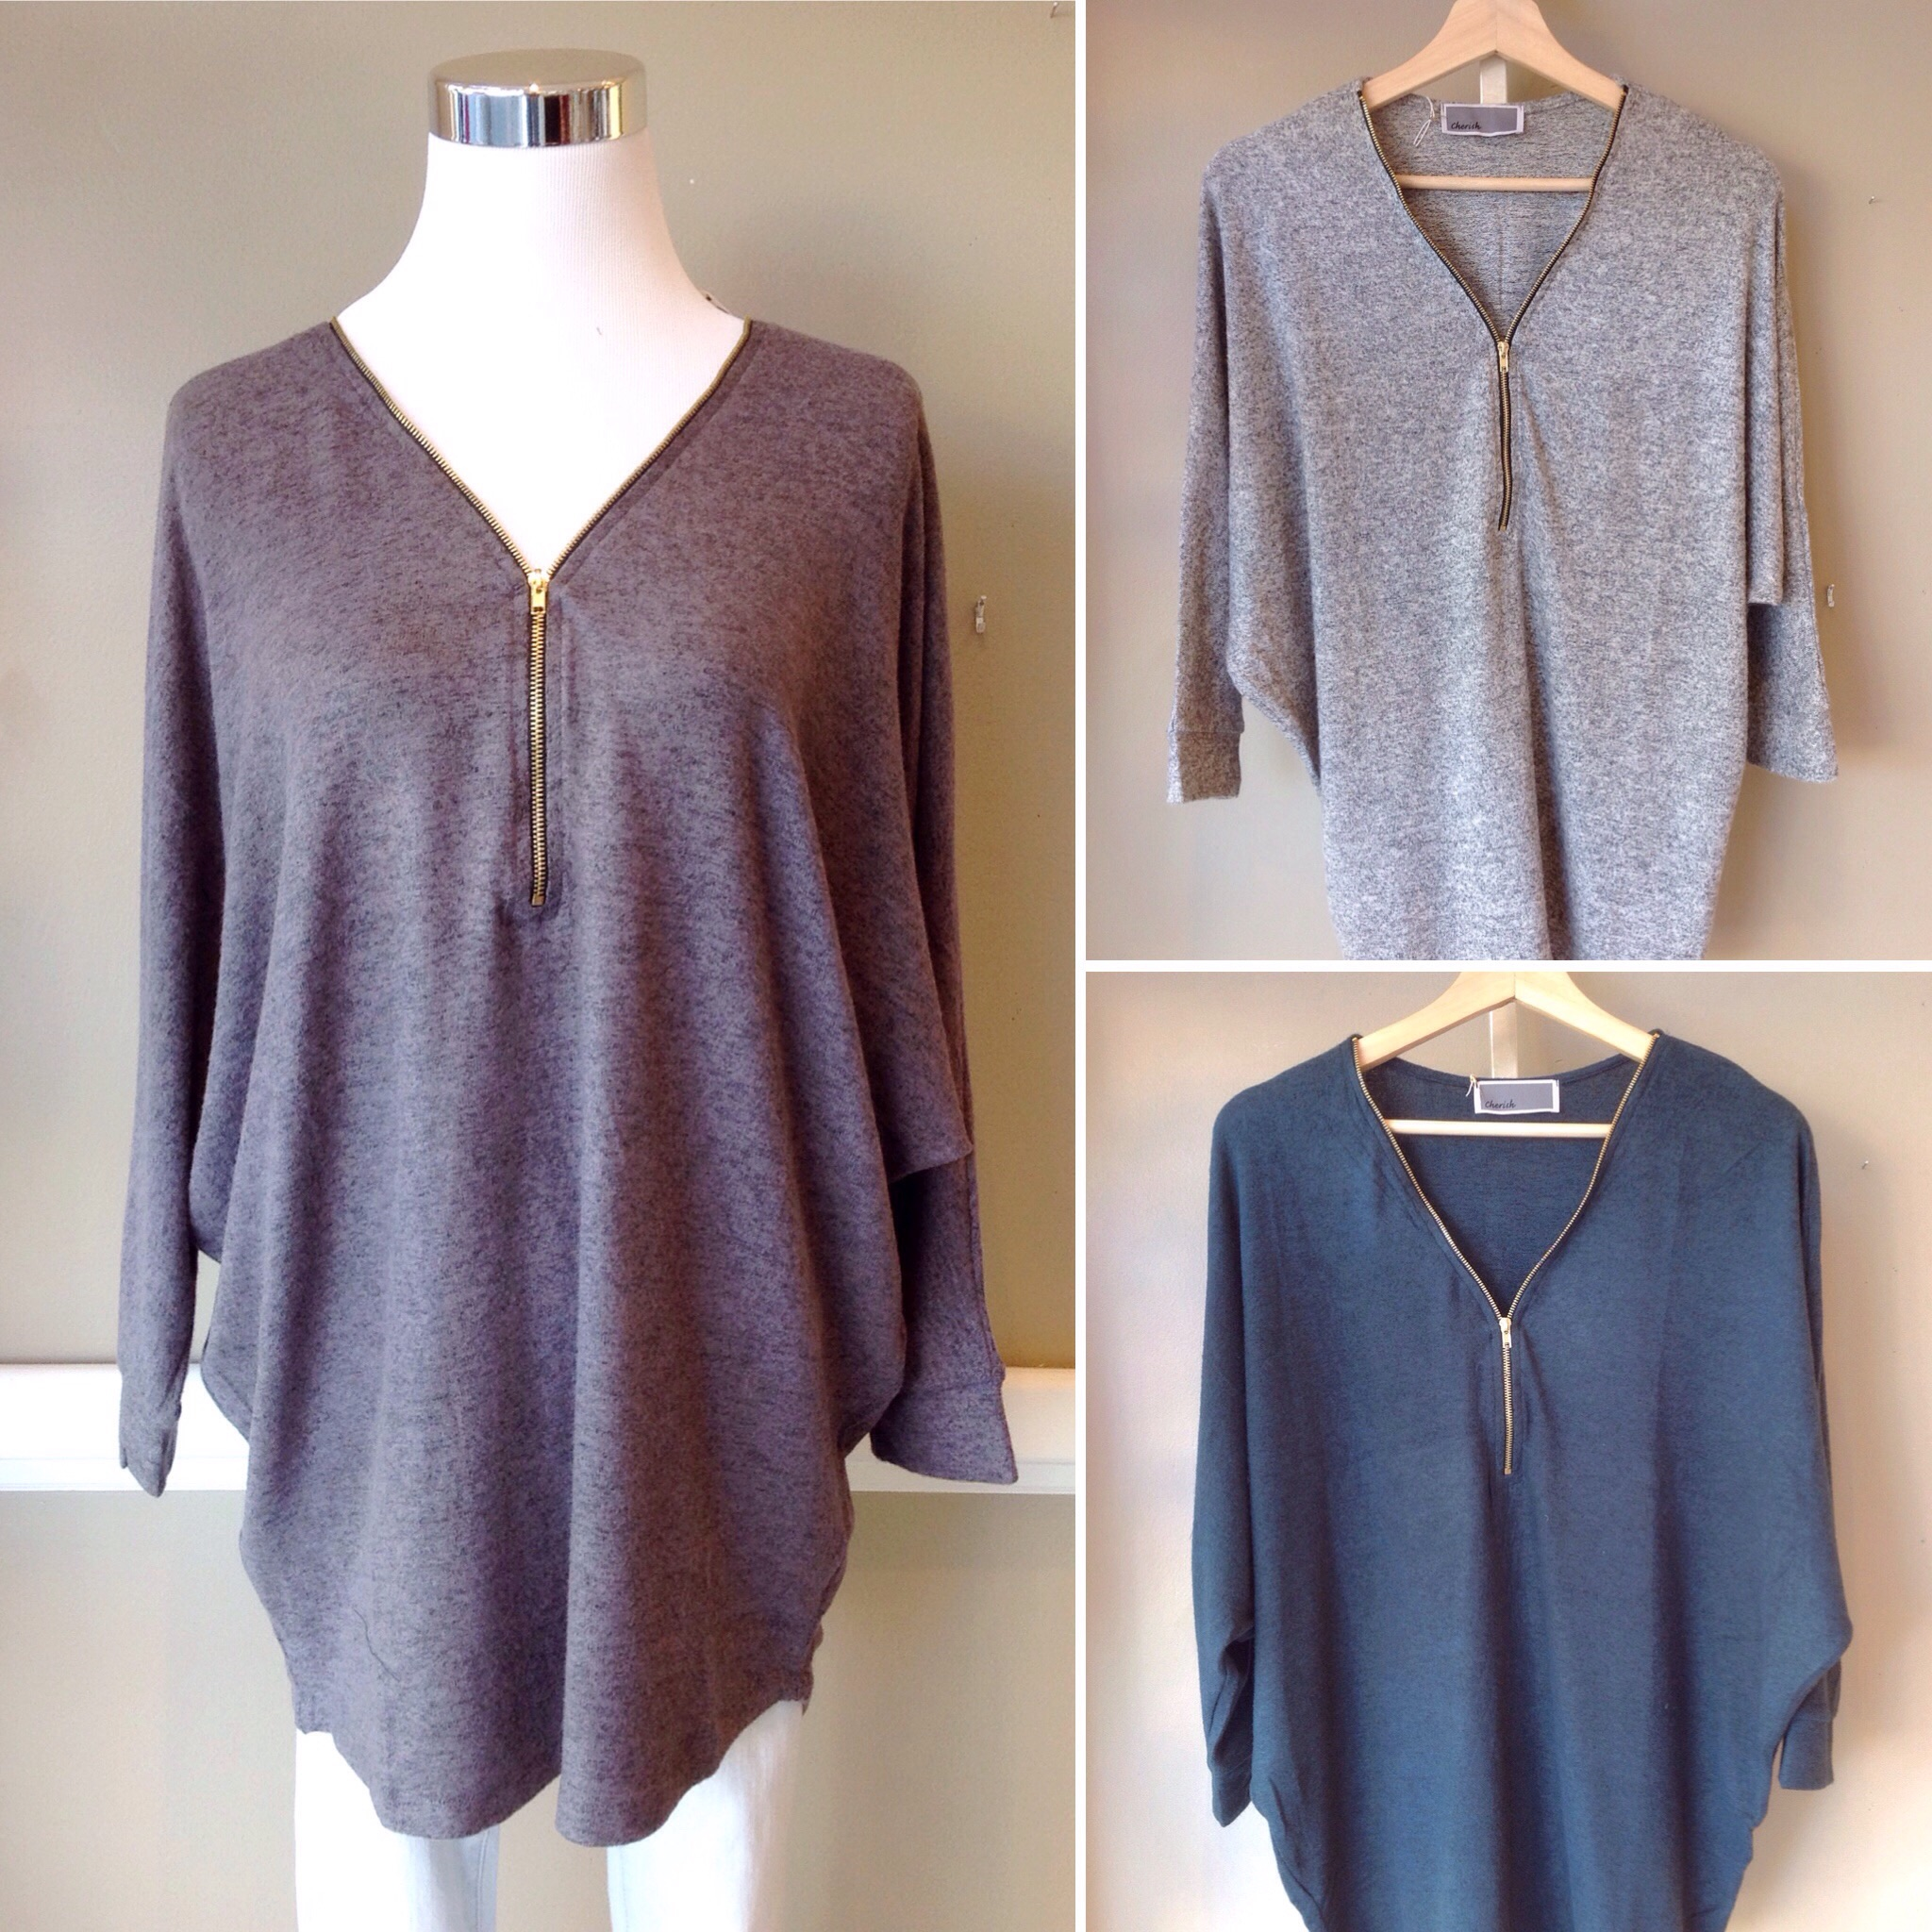 V-neck sweater with batwing sleeves and zipper front, $35. Available in charcoal, hunter green, and heather grey.